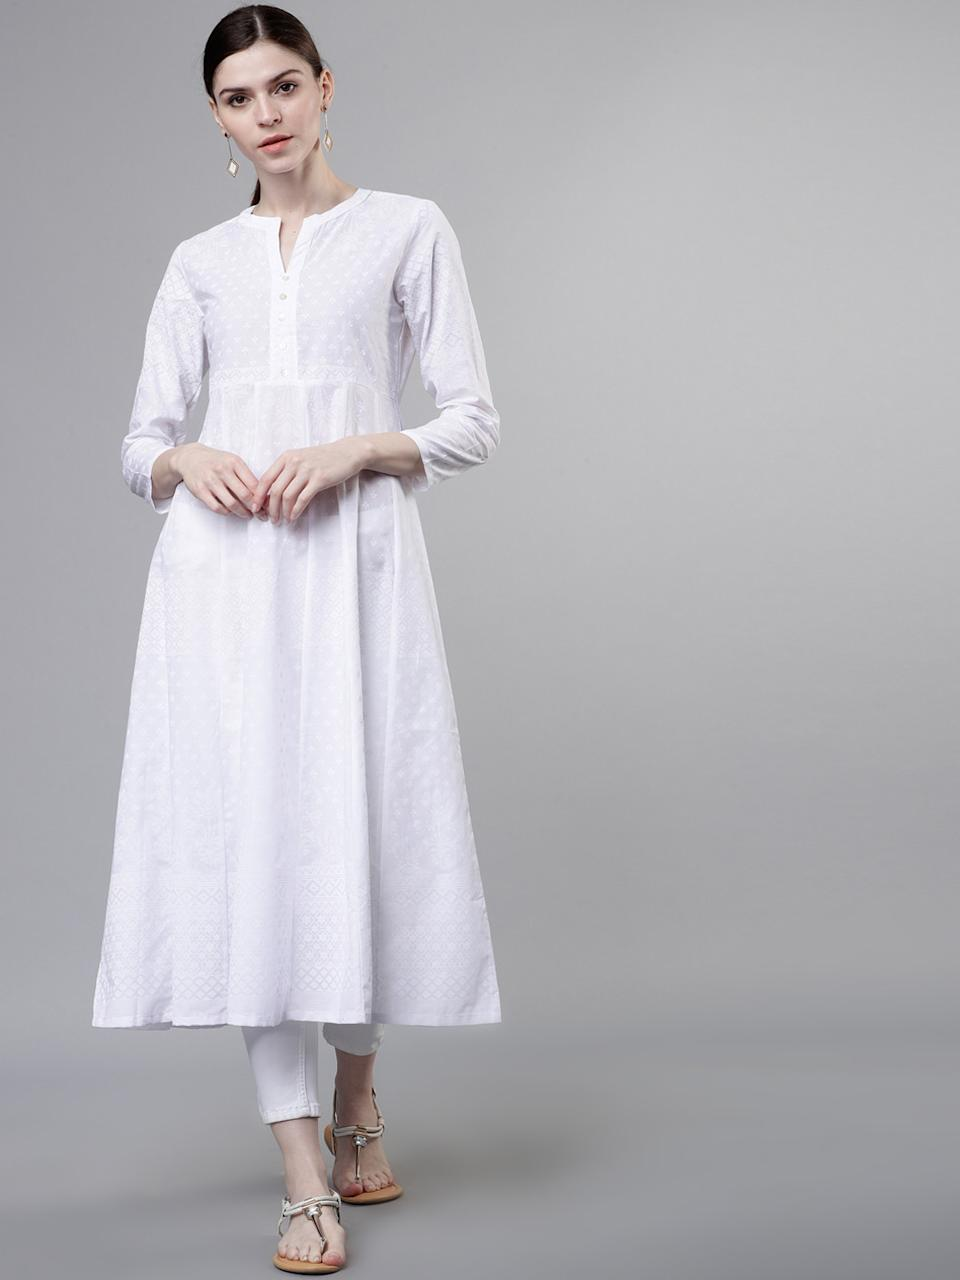 "<a href=""https://fave.co/3bS3FtK"" rel=""nofollow noopener"" target=""_blank"" data-ylk=""slk:BUY HERE"" class=""link rapid-noclick-resp"">BUY HERE</a> White printed A-line kurta, has a mandarin collar, three-quarter sleeves, and flared hem, by Vishudh from Myntra, for a discounted price of <strong>Rs. 899</strong>"